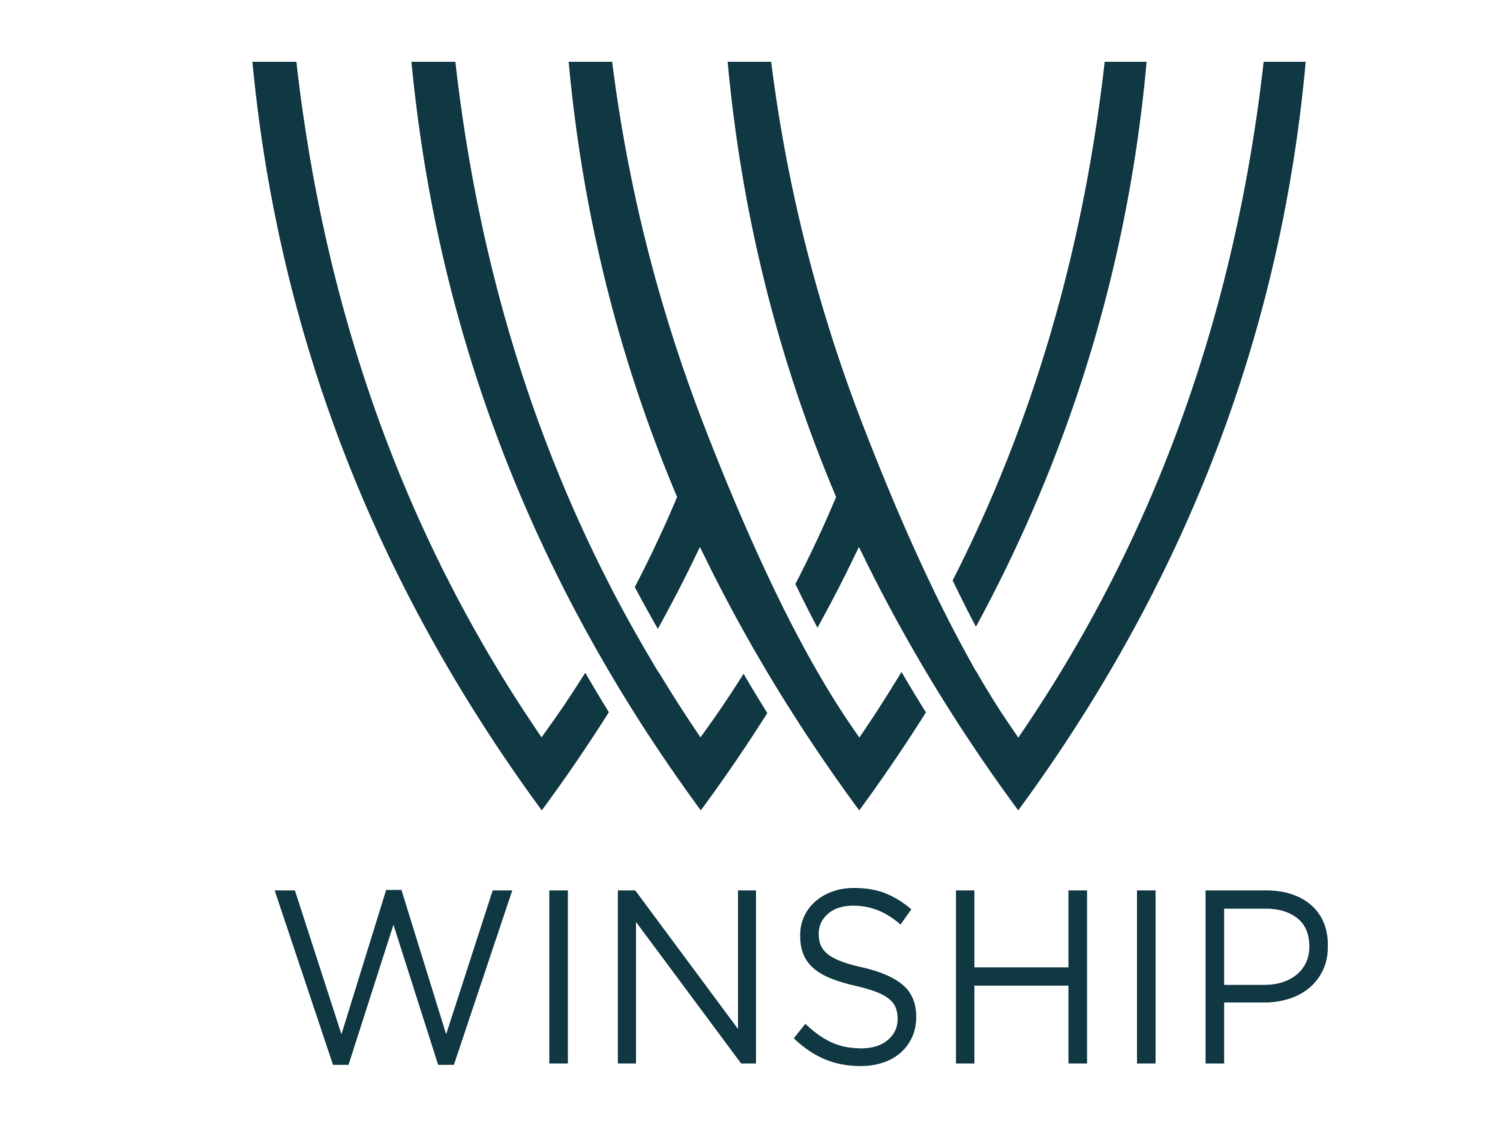 WINSHIP Handcrafted Live Music & Event Sound Design